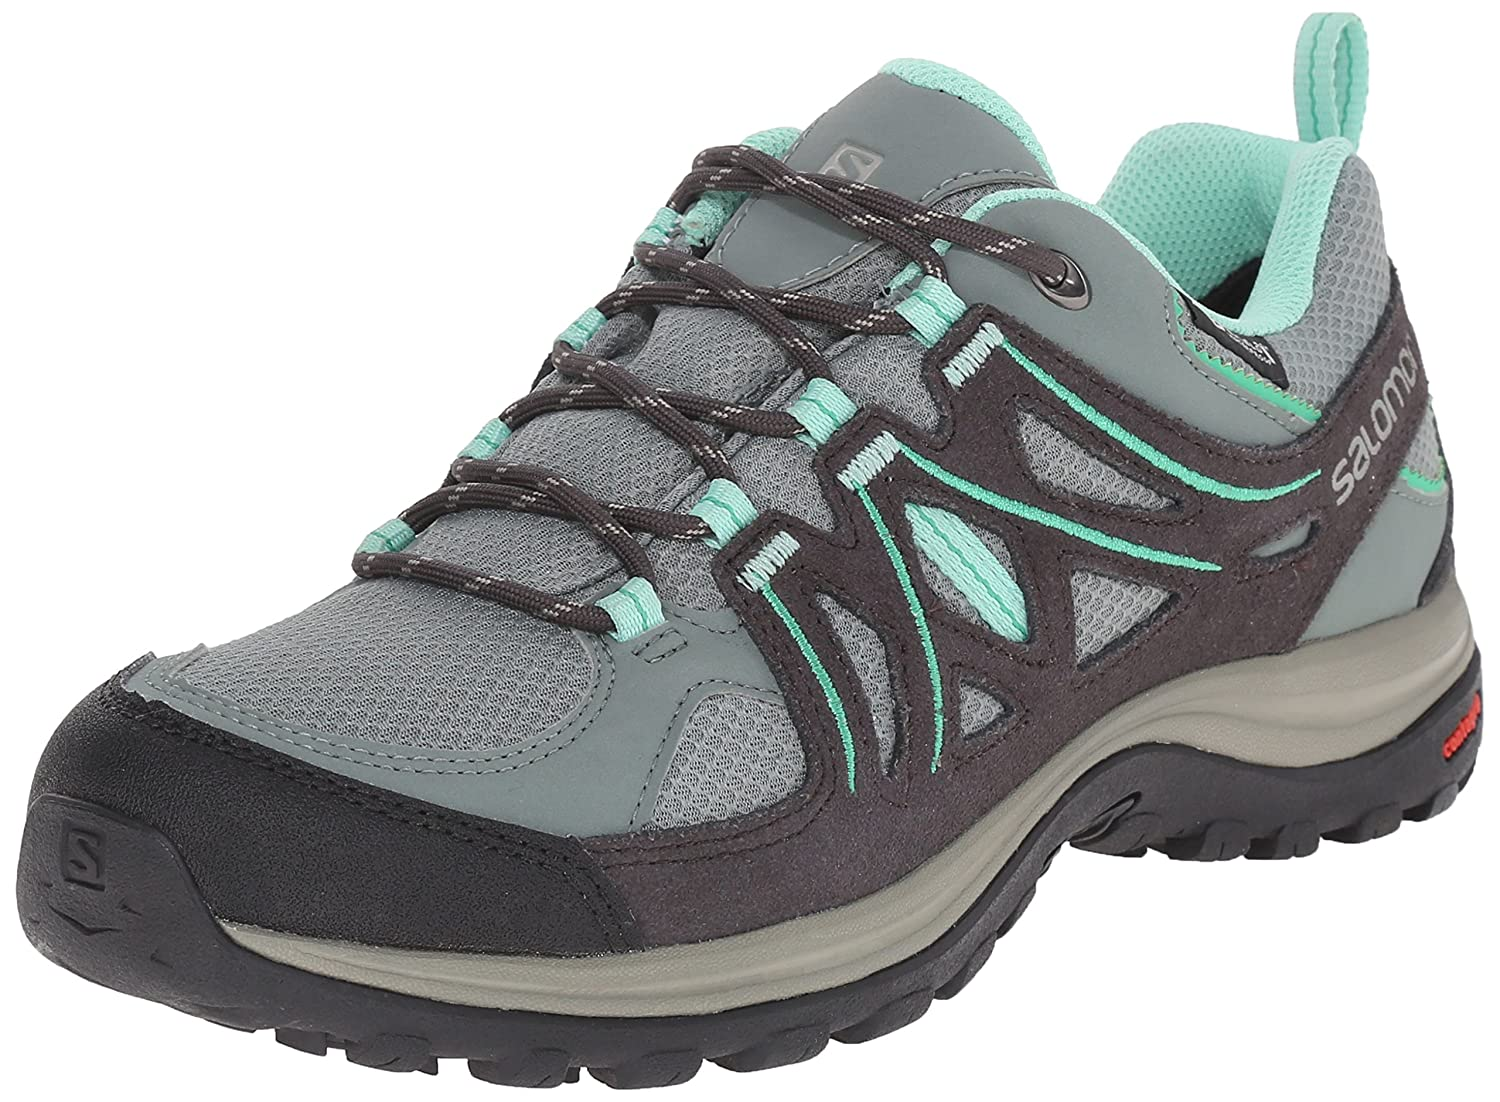 Salomon Ellipse 2 CS WP Outdoorschuh, Groesse 5, Türkis/Grau